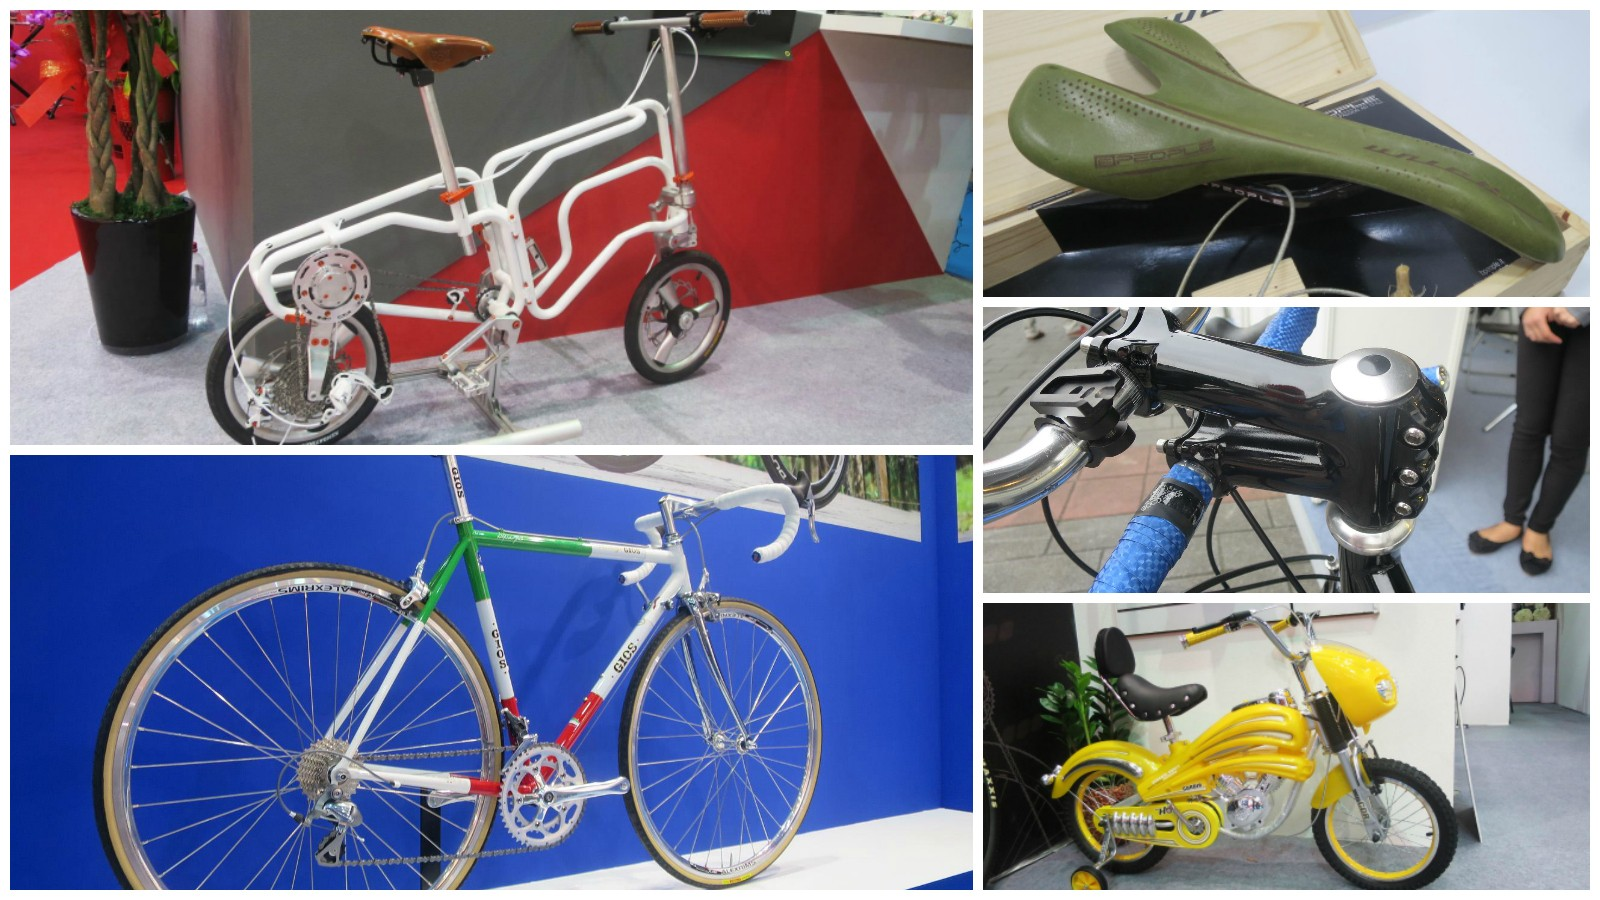 Taipei Cycle Show 2017: The good, the bad and the ugly